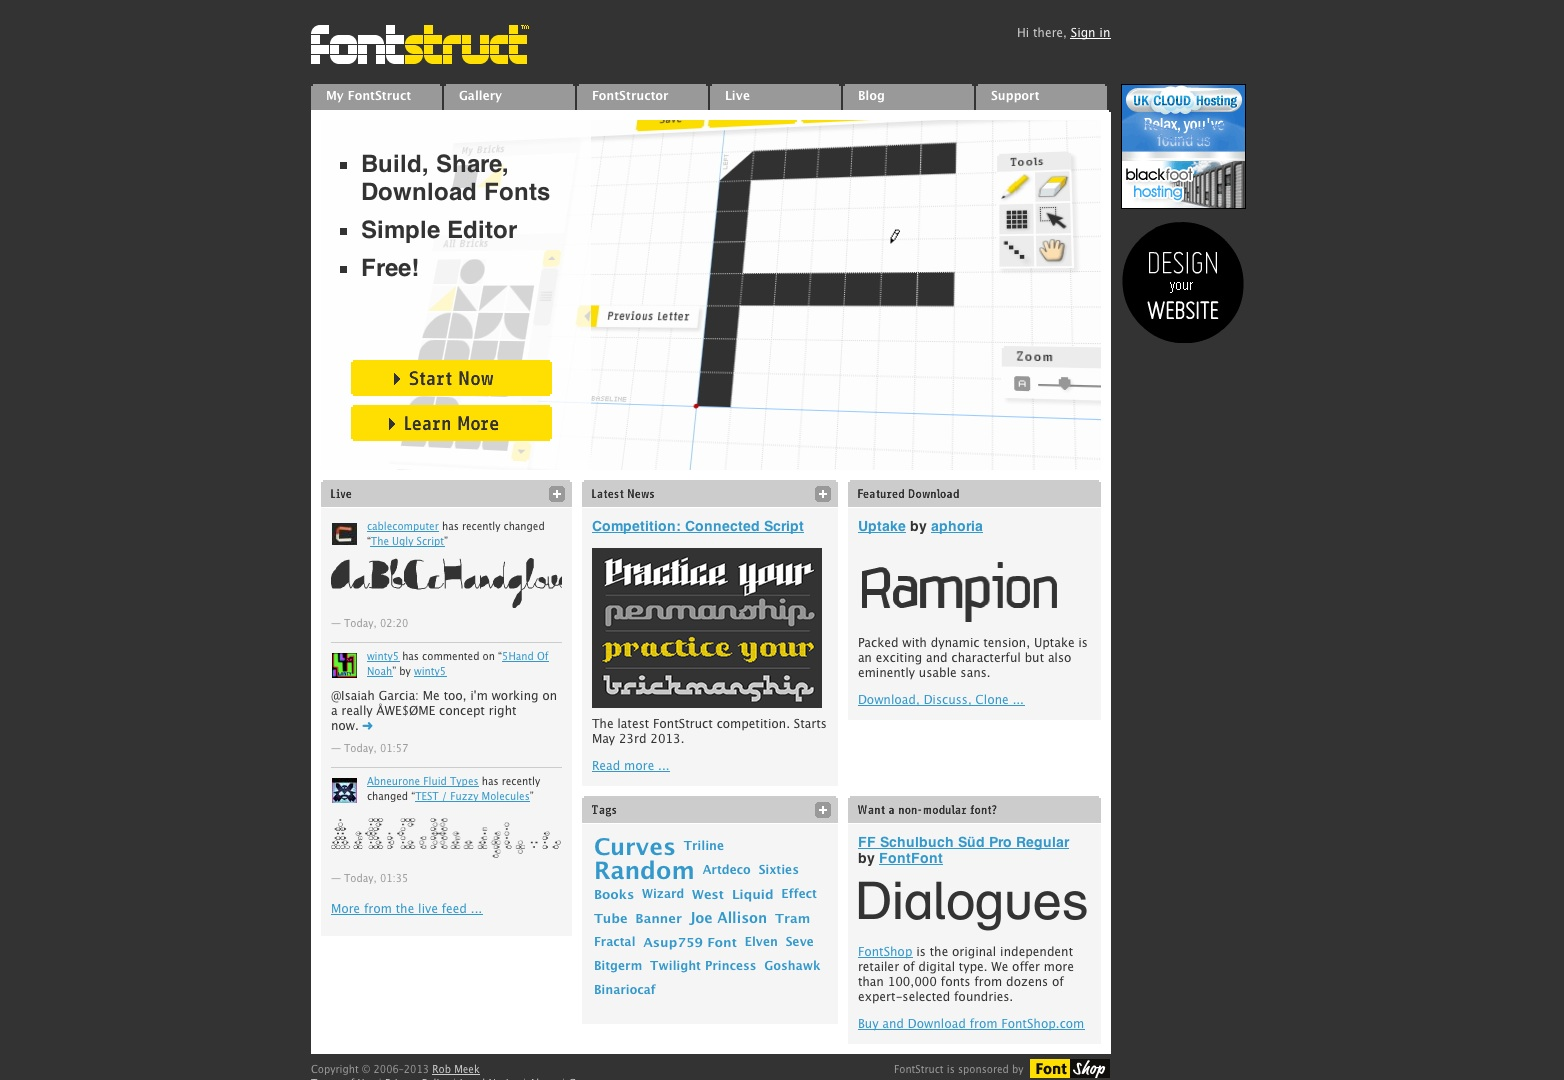 FontStruct | Construir, compartir, descargar fuentes